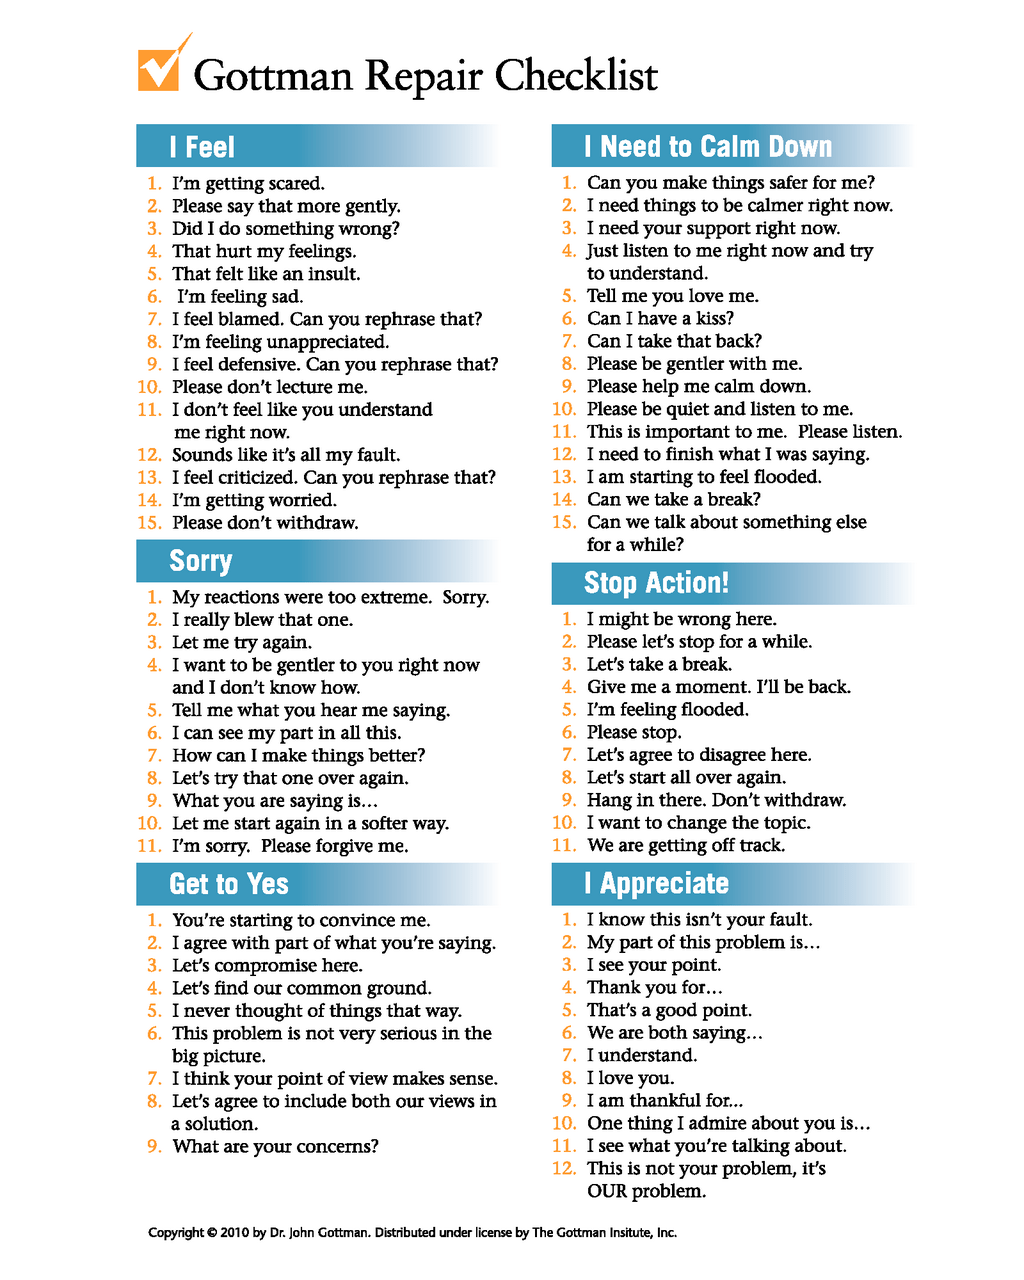 Psychologist John Gottman S Relationship Repair Checklist